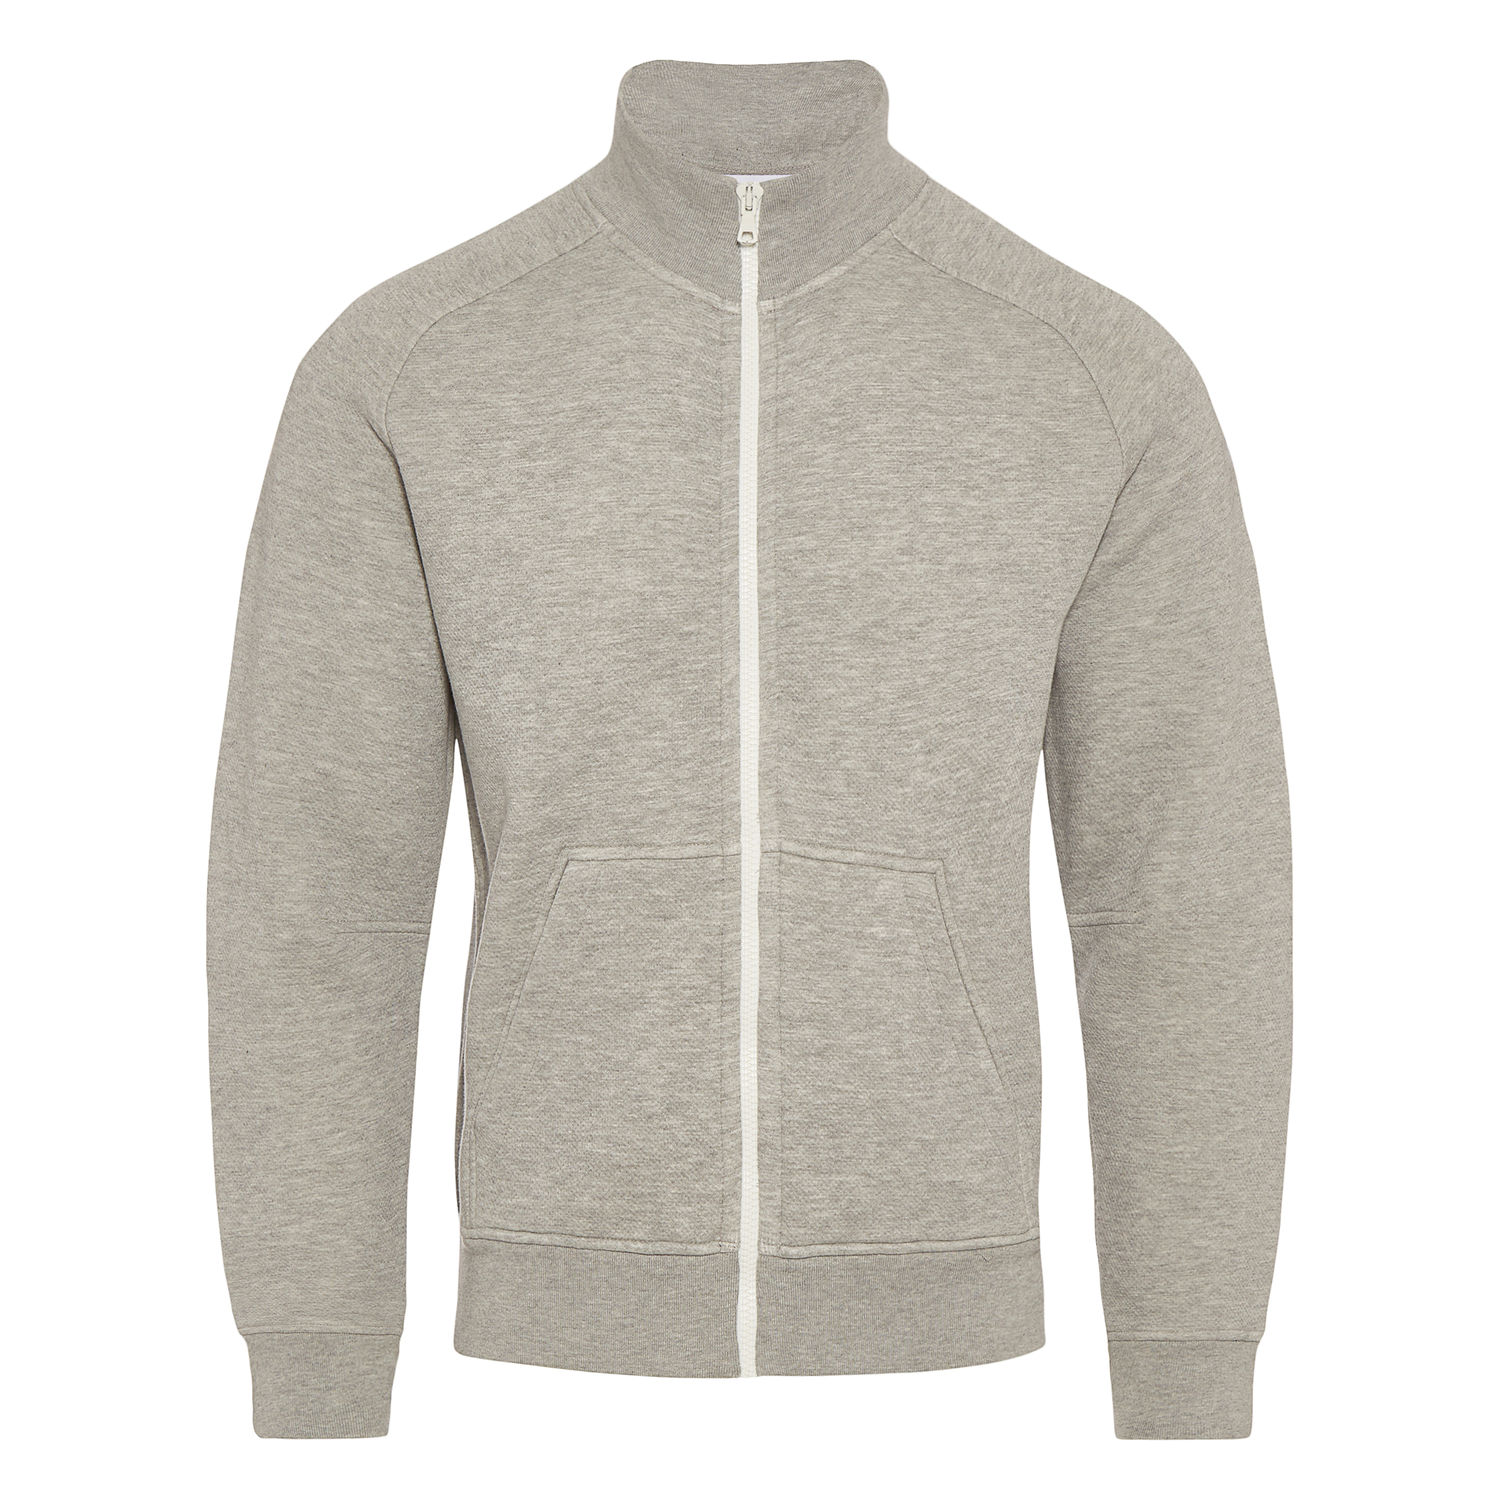 Orlebar Brown zip-up sweatshirt - £175 - Do the Bank Holiday chill in style, with fitted and sporty casual wear from Orlebar Brown